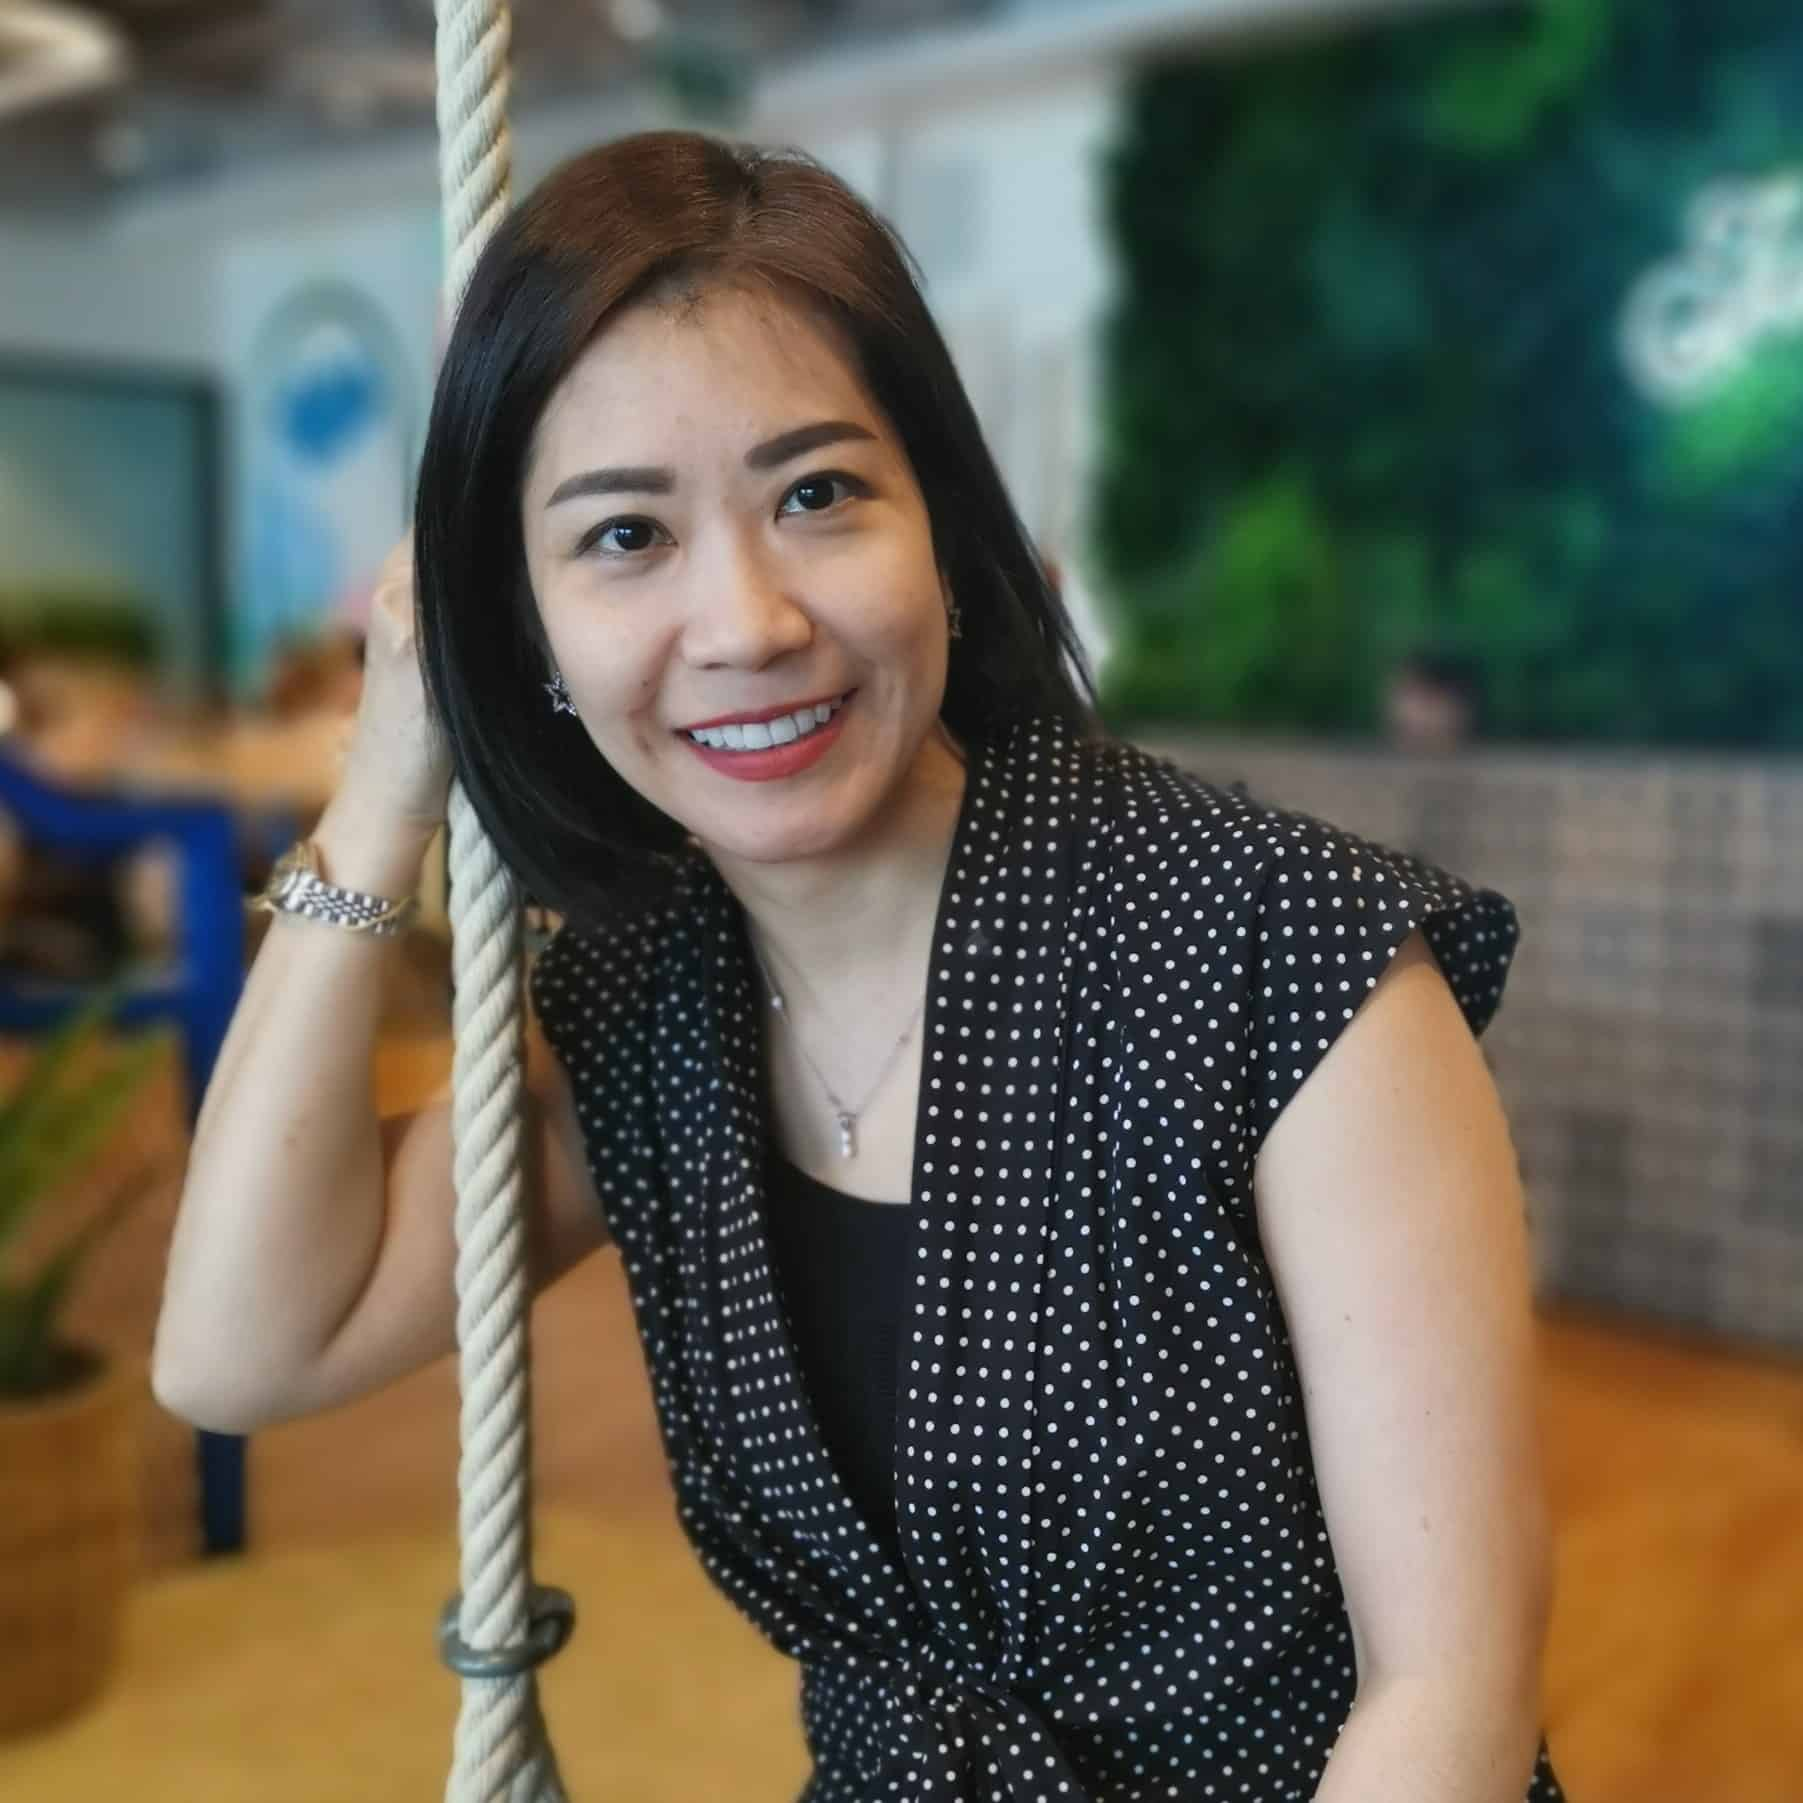 Khun Orala Operations Manager and Events Planner at B-Concept Media Entertainment Group and BCD Meetings and Events Thailand.